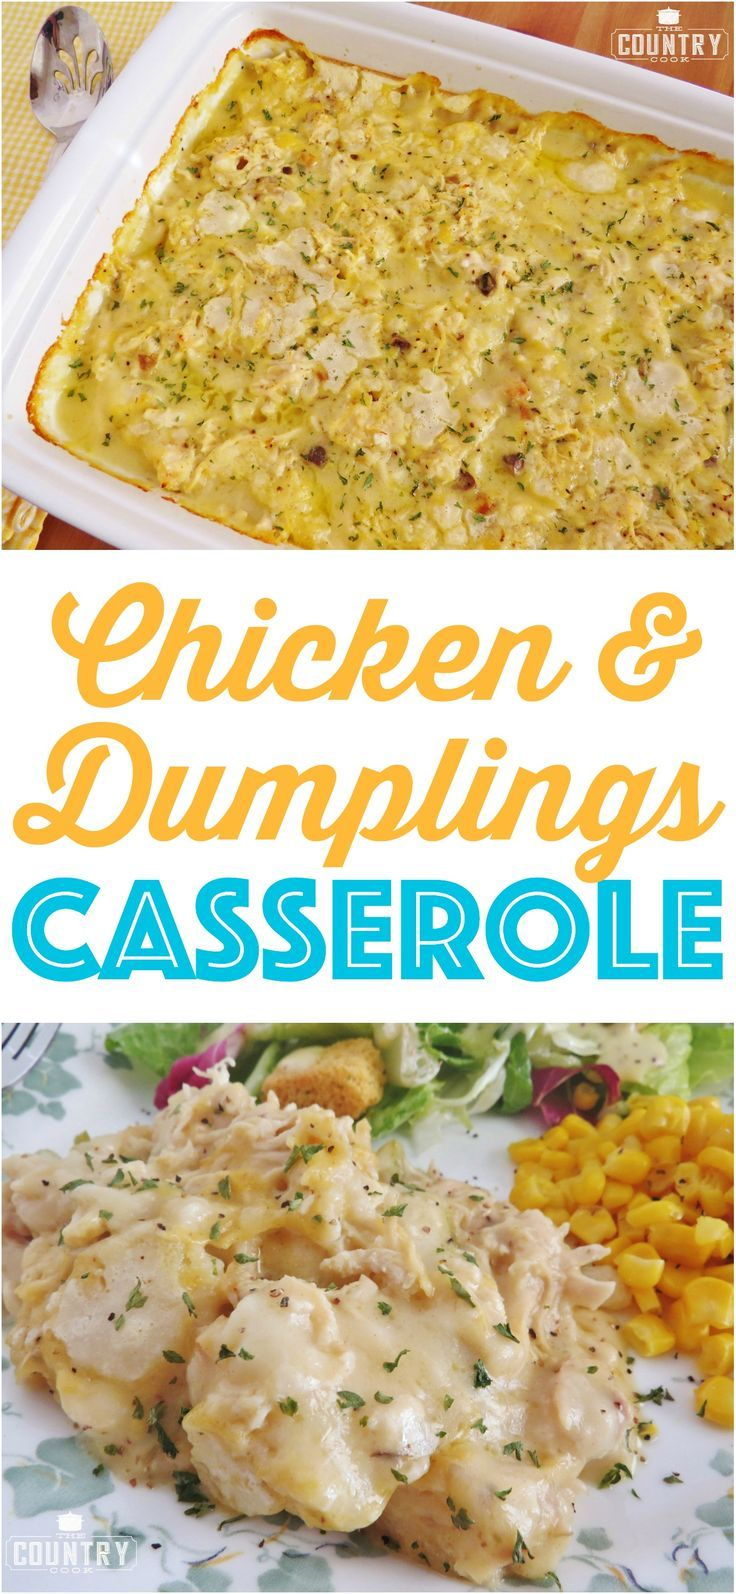 All Things Savory: Chicken and Dumplings Casserole - The Country Cook...